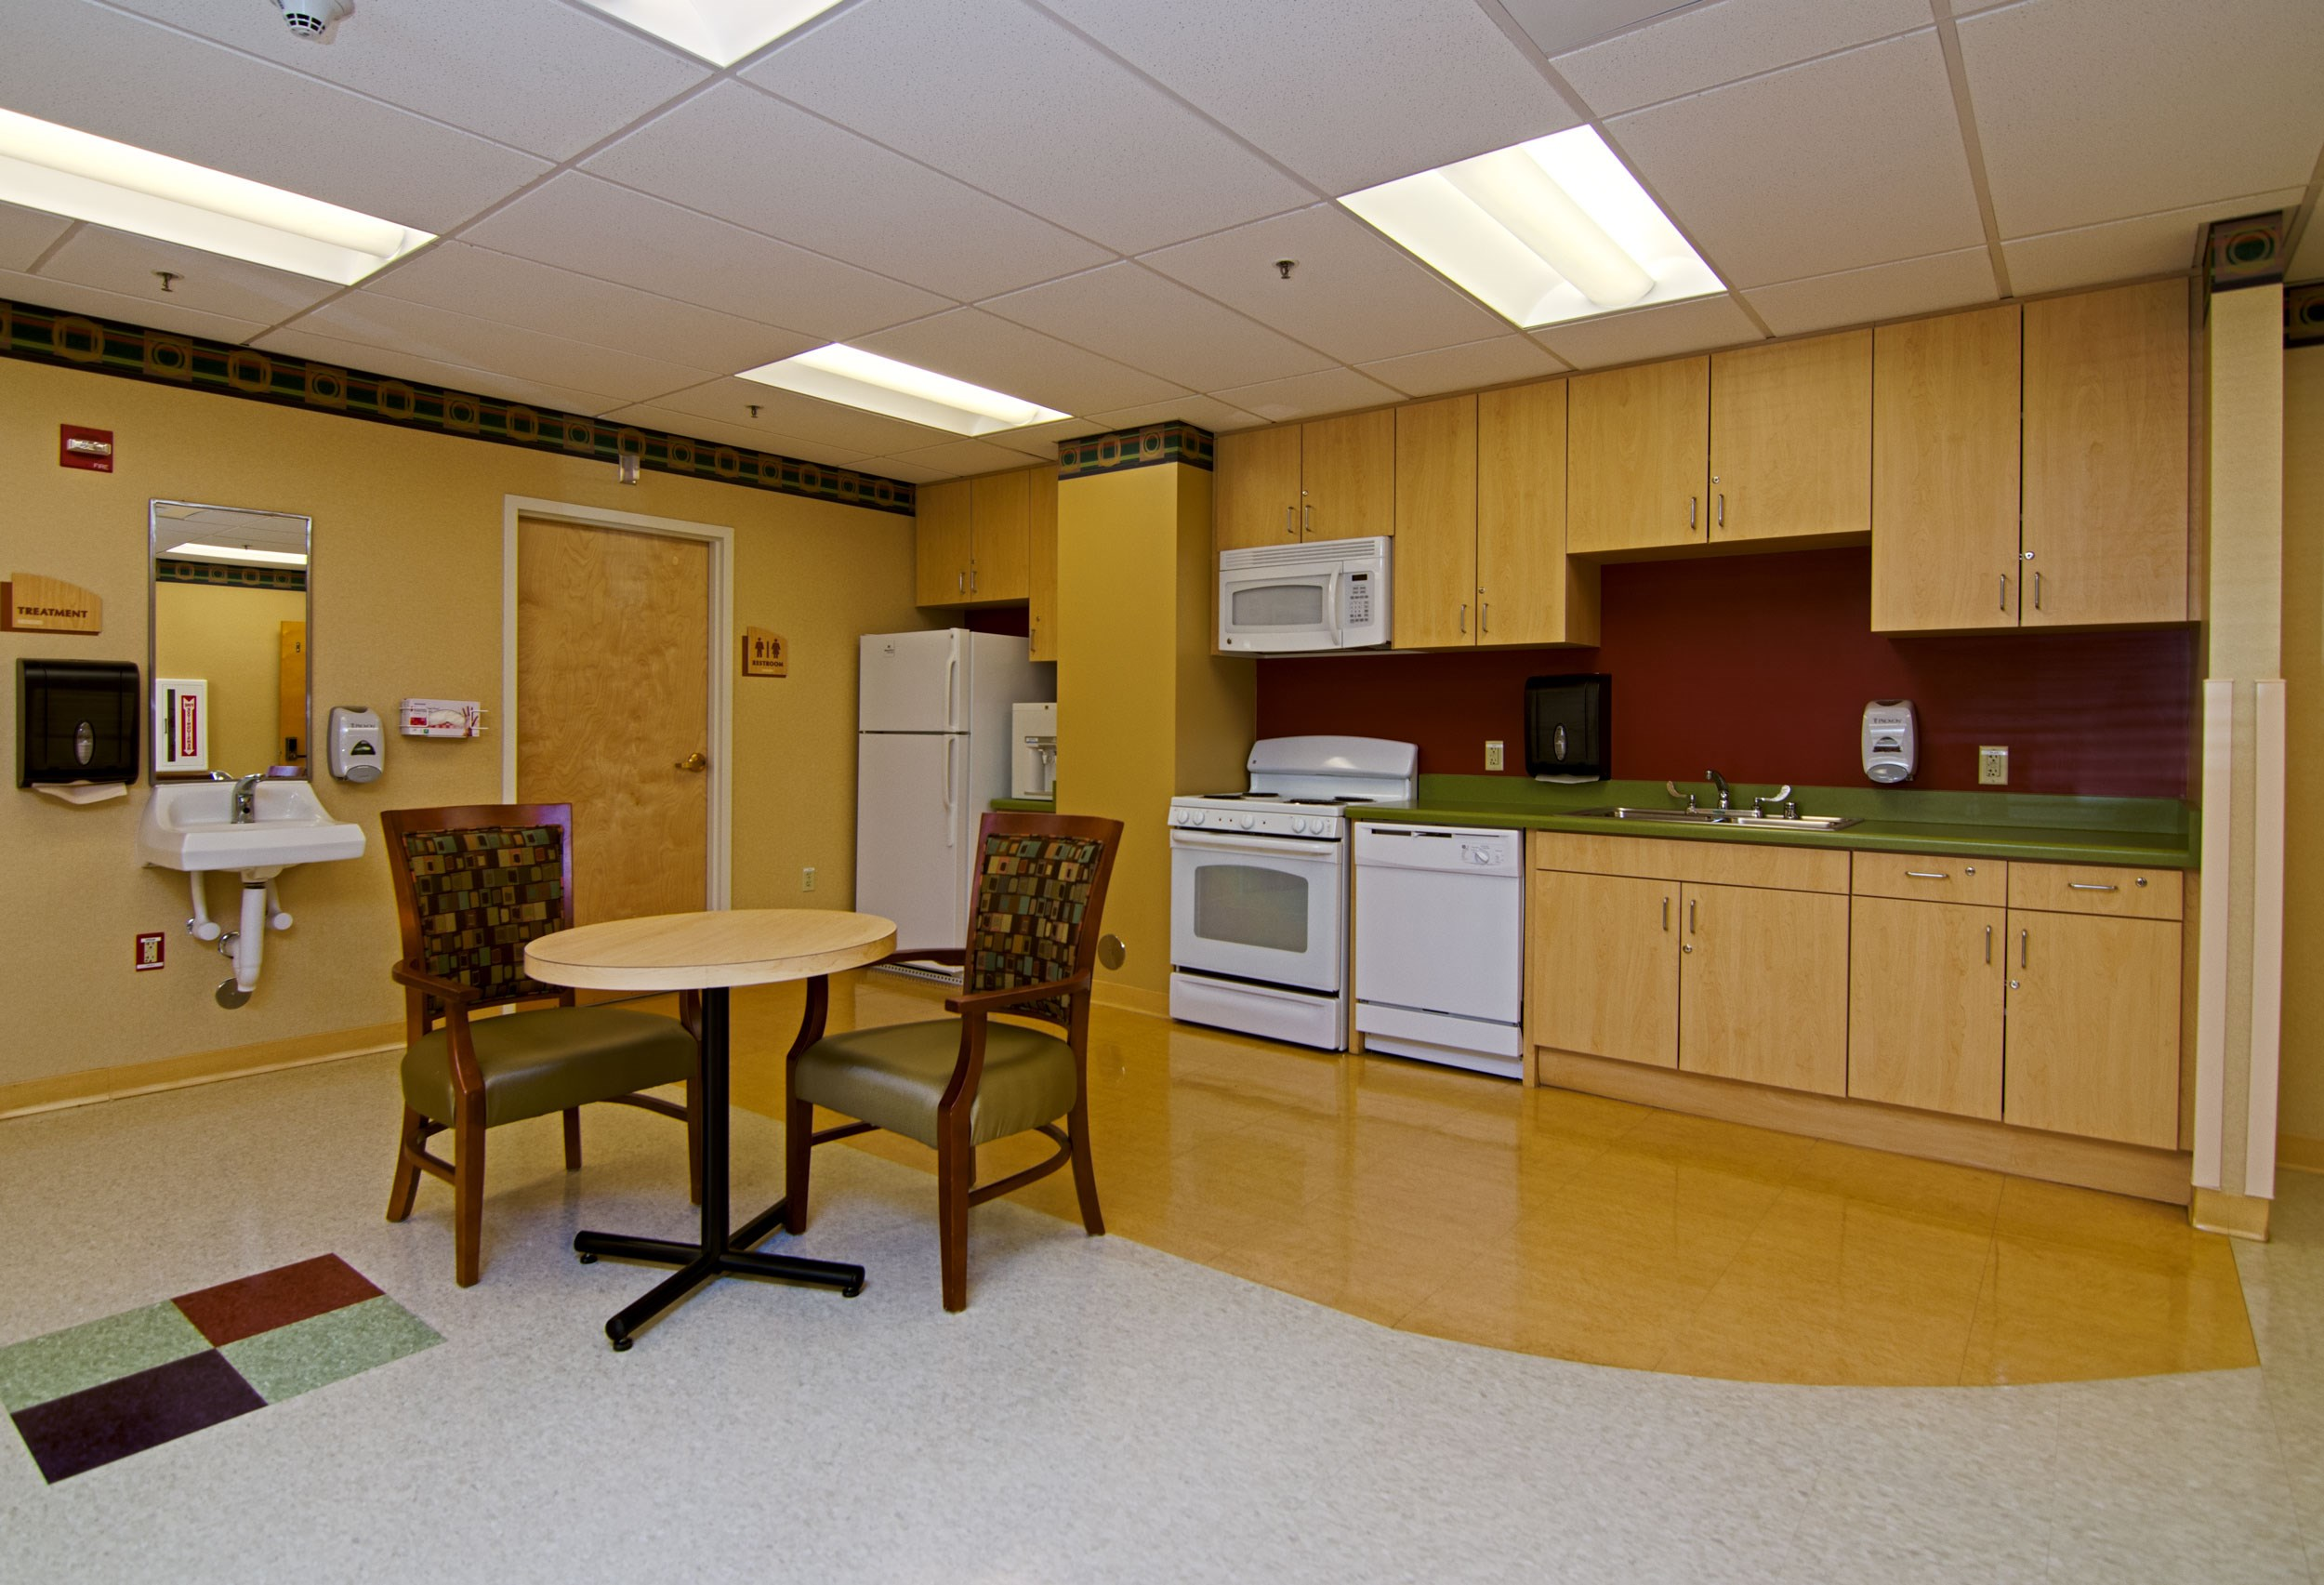 017_Kitchen Area.jpg